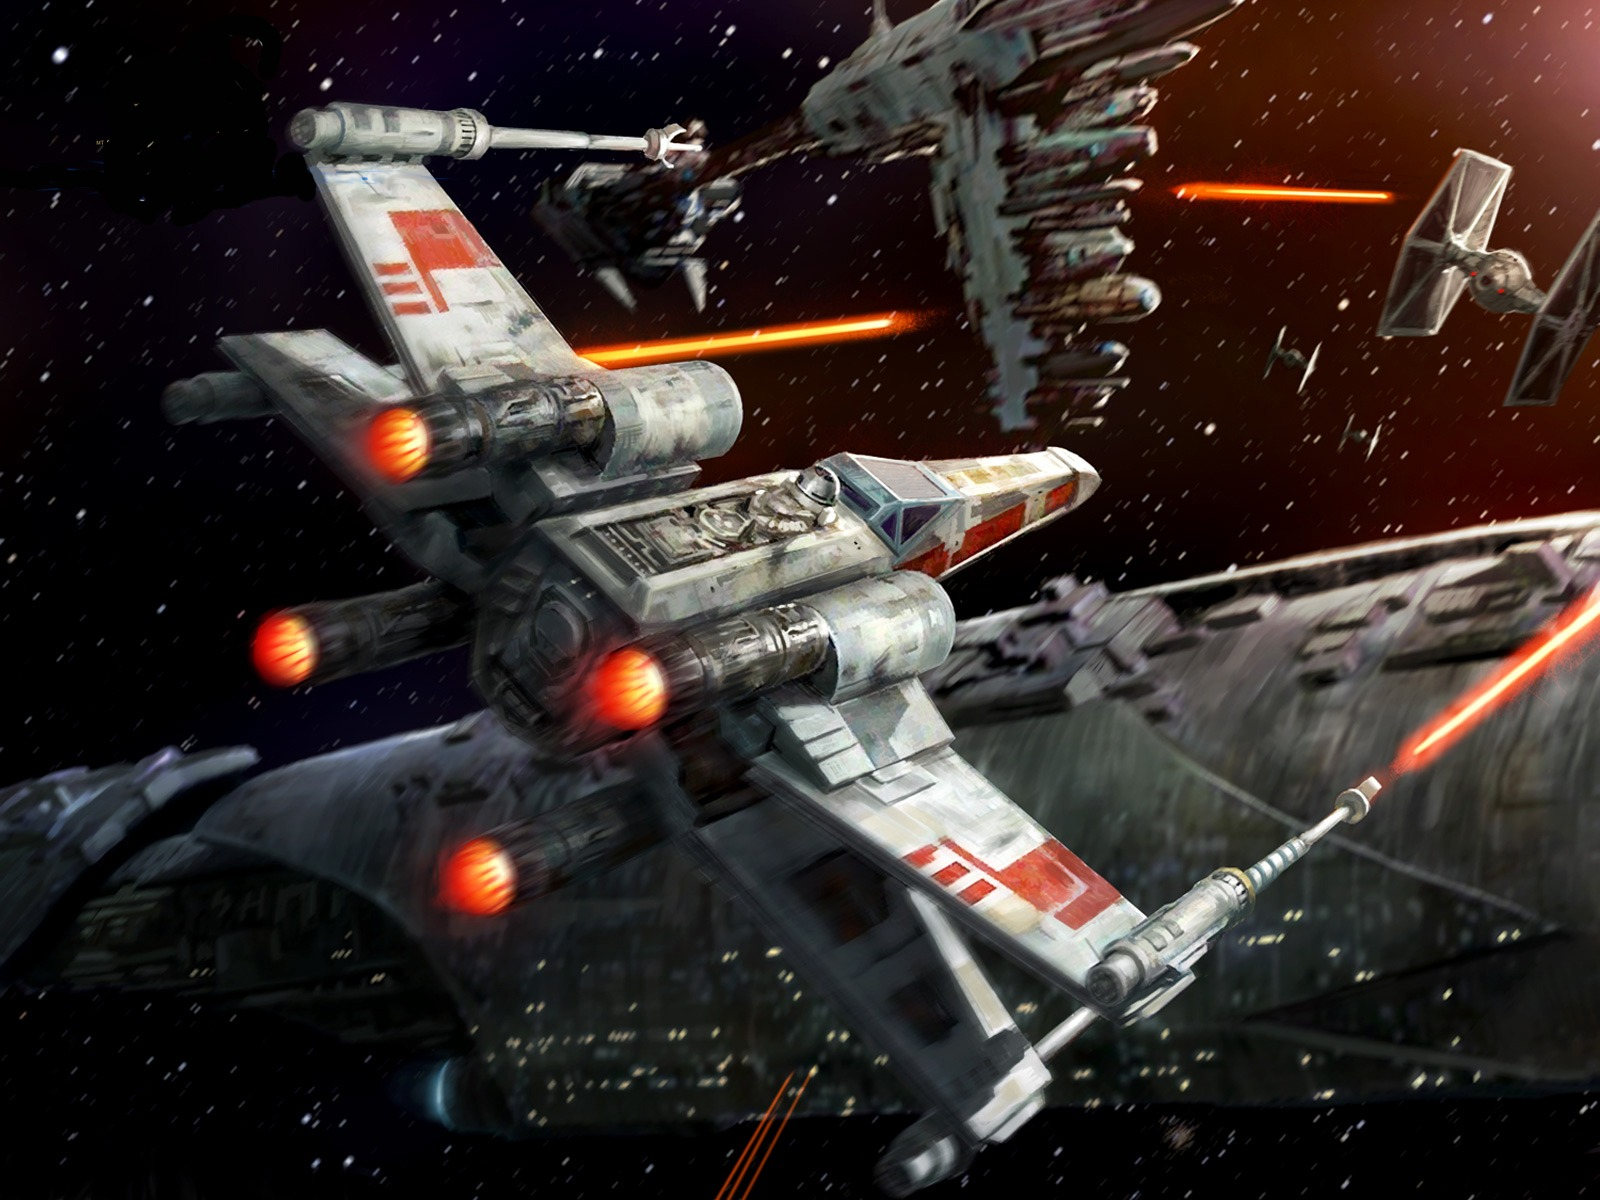 http://www.spacegamejunkie.com/wp-content/uploads/2011/08/X-wing_SWGTCG.jpg